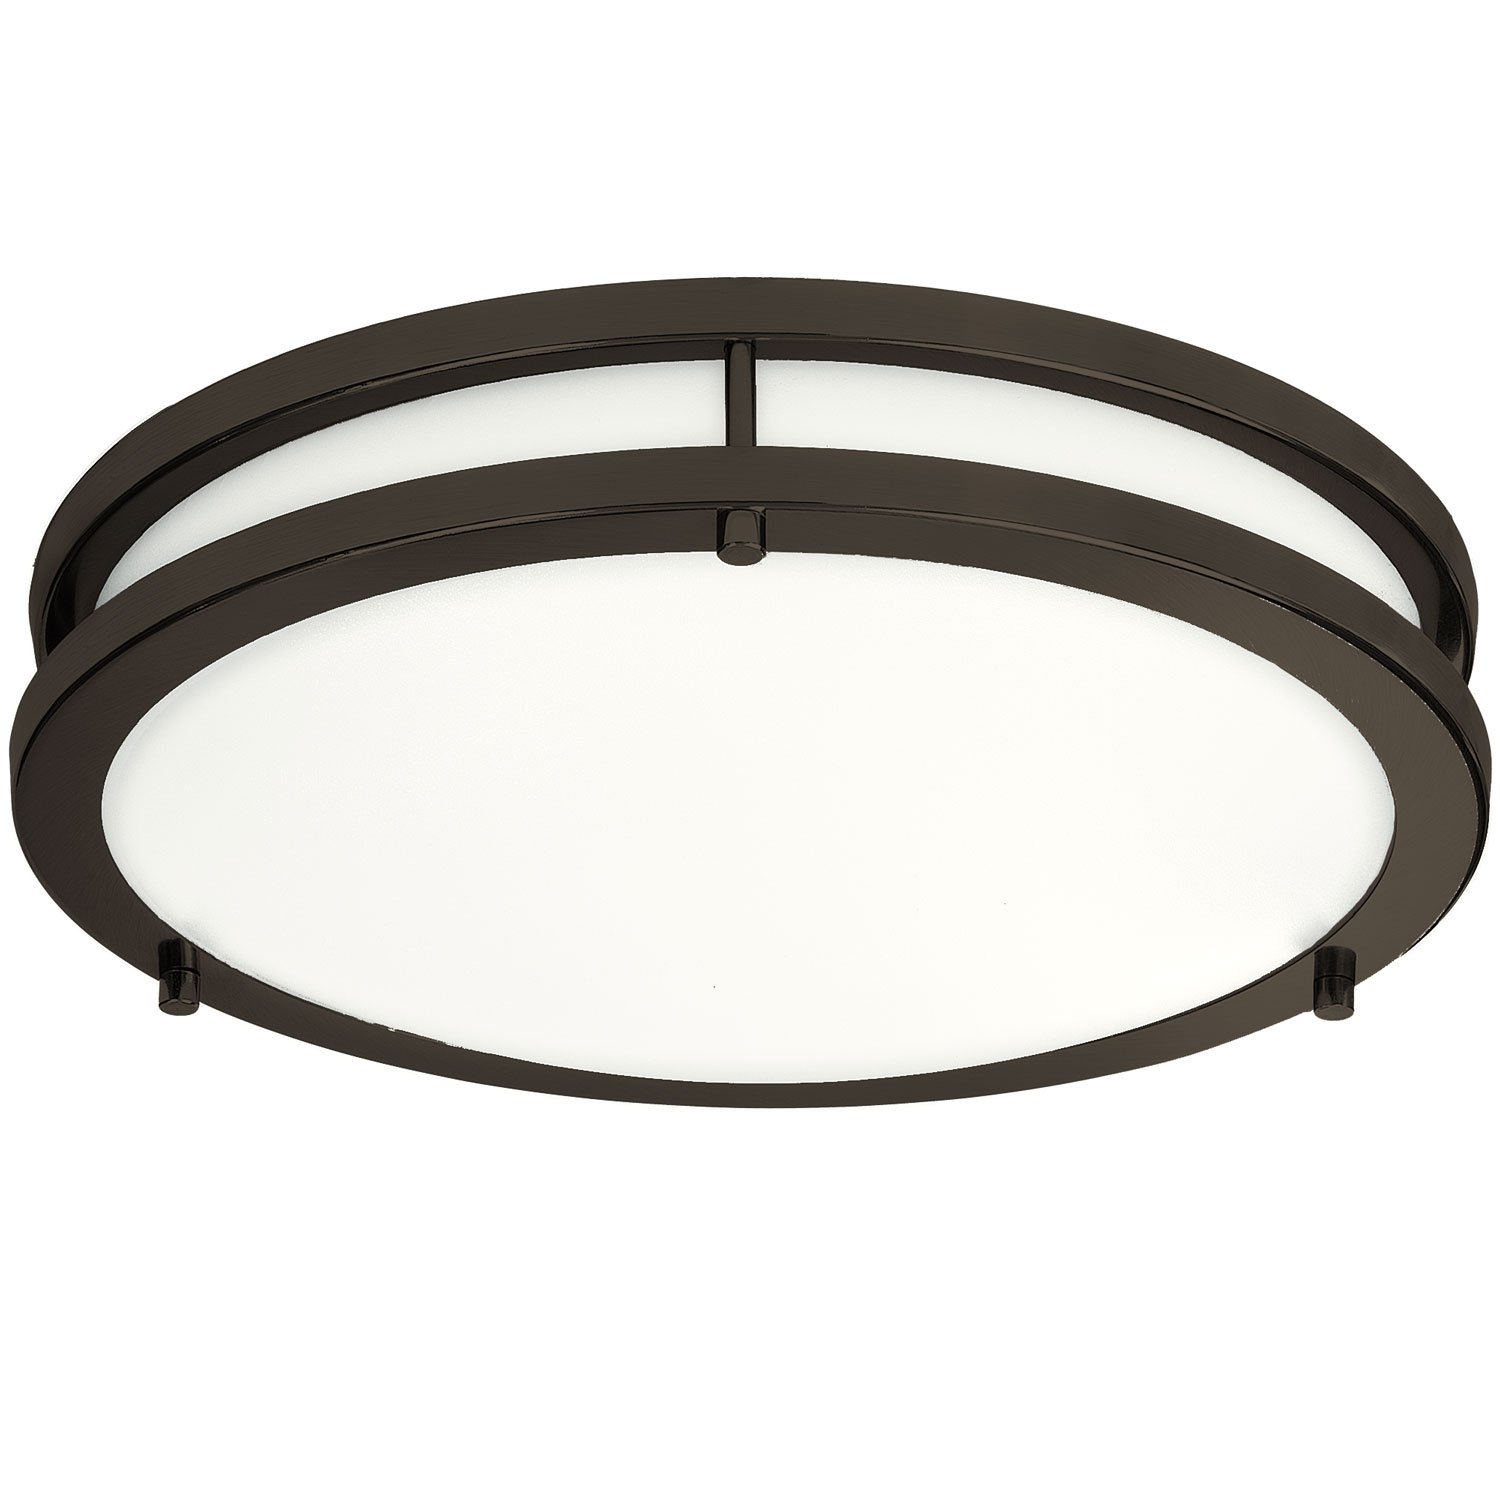 LB72160 12-inch LED Flush Mount Ceiling Light, Oil Rubbed Bronze, 5000K Daylight, 1050 Lumens, ETL & DLC Listed, Energy Star, Dimmable LED Ceiling Light